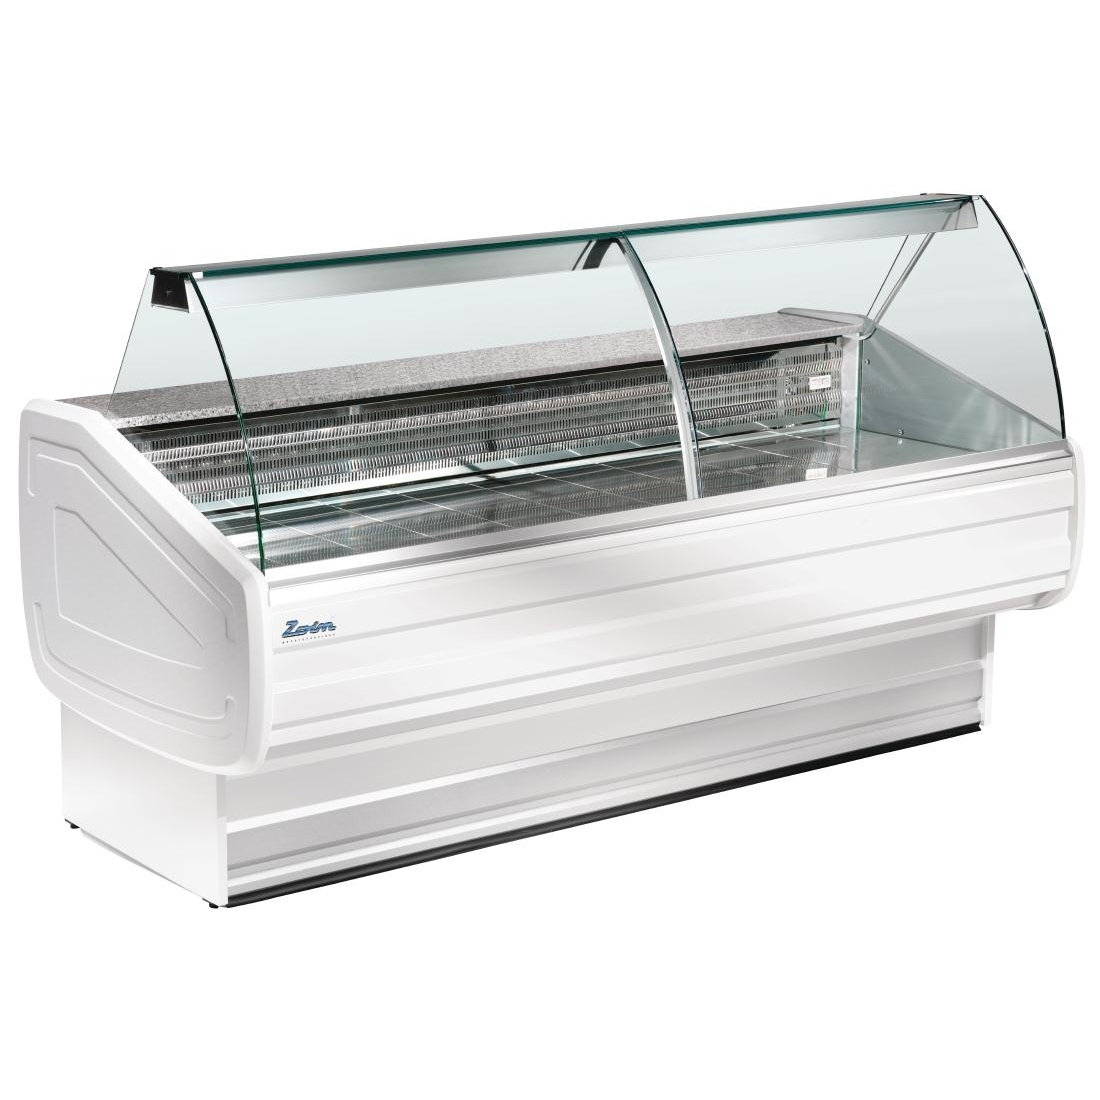 Zoin Melody Deli Serve Over Counter Chiller 3500mm MY350B